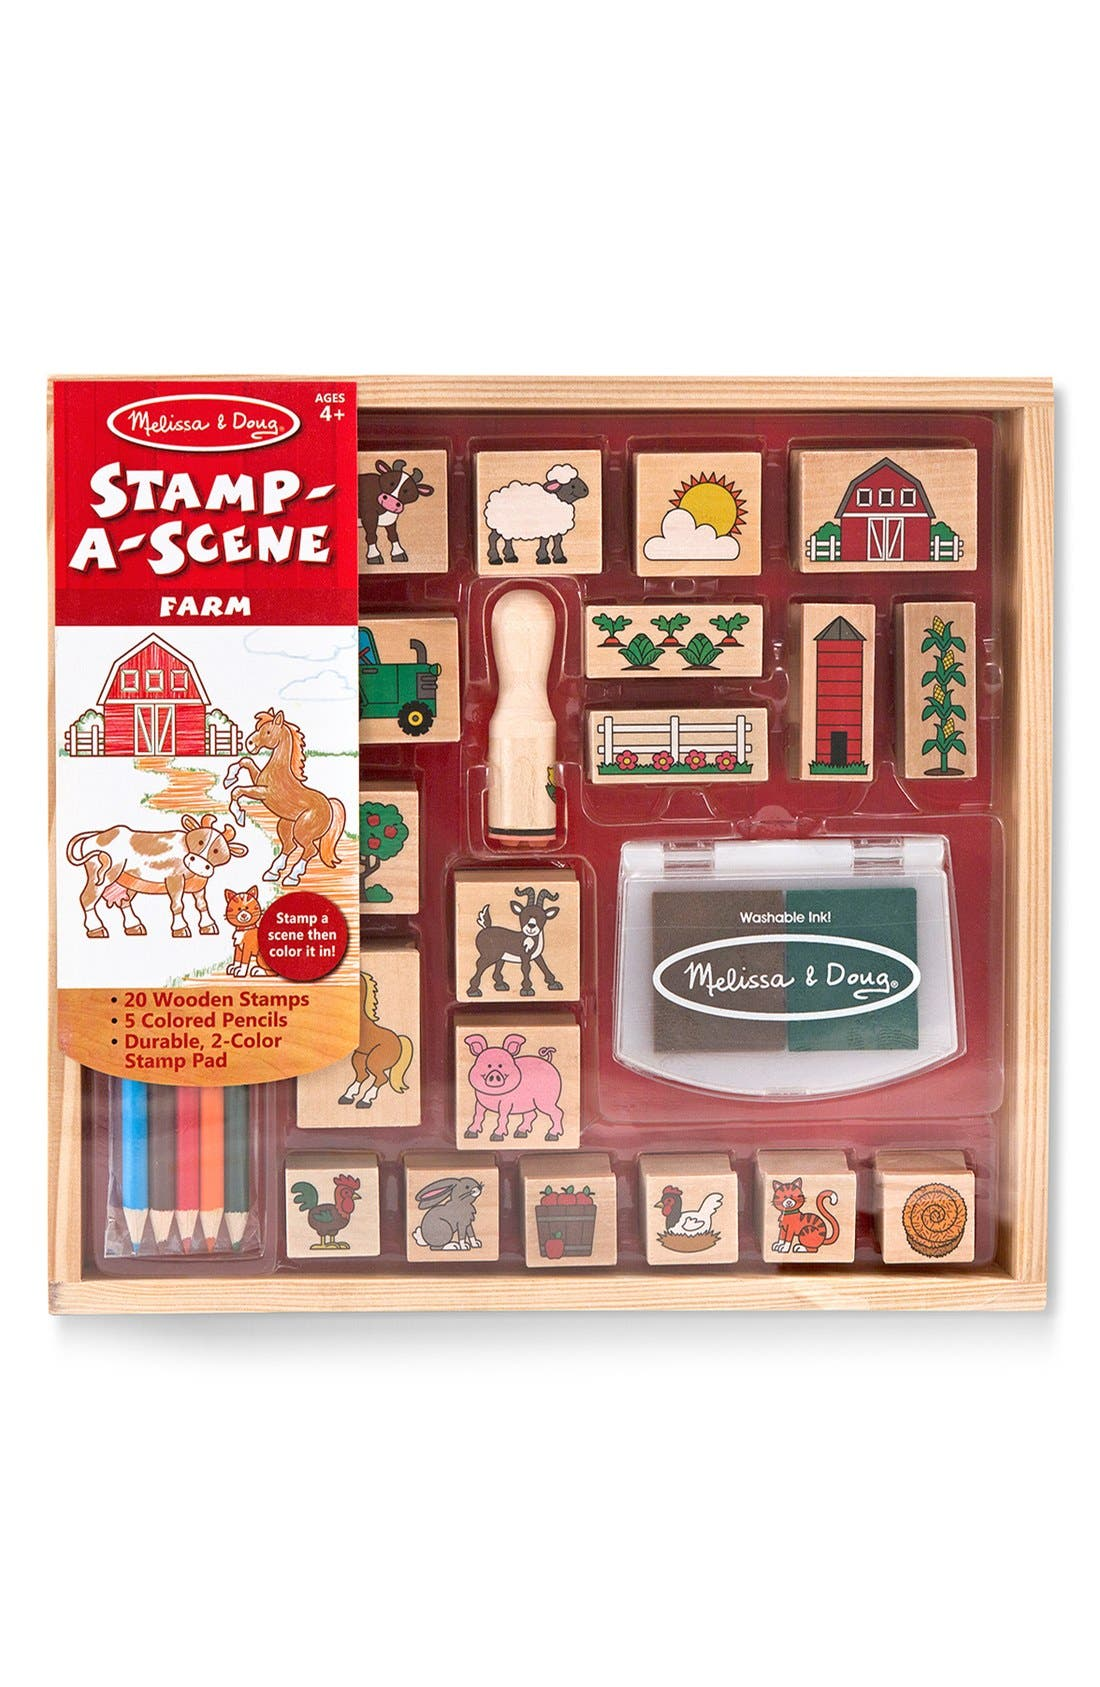 Alternate Image 1 Selected - Melissa & Doug 'Stamp-A-Scene - Farm' Stamp Set